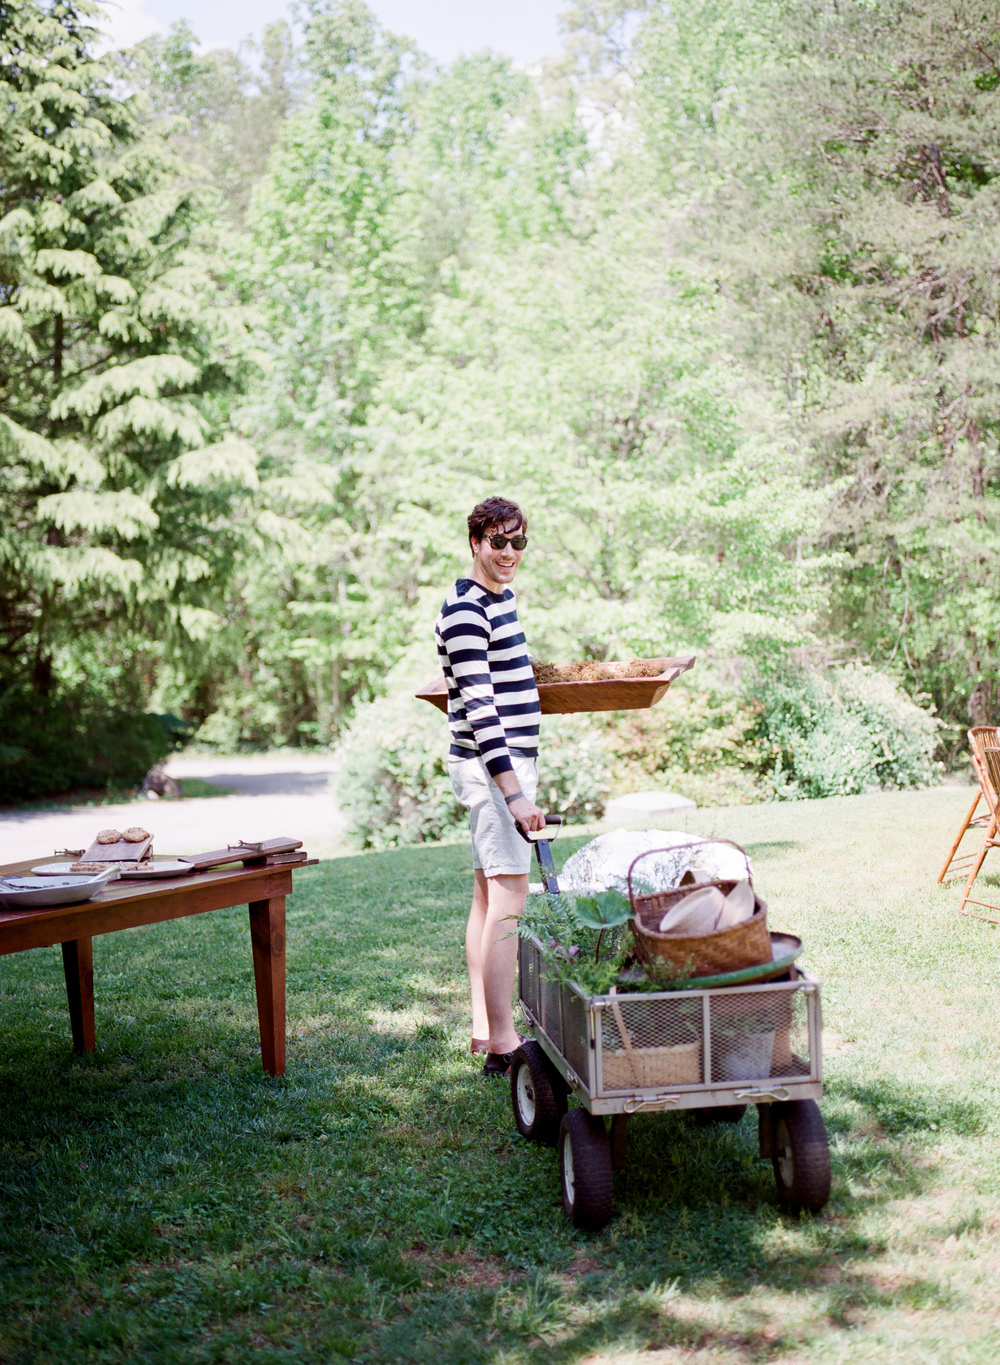 Rt Lodge garden lunch film 22 sarah ingram